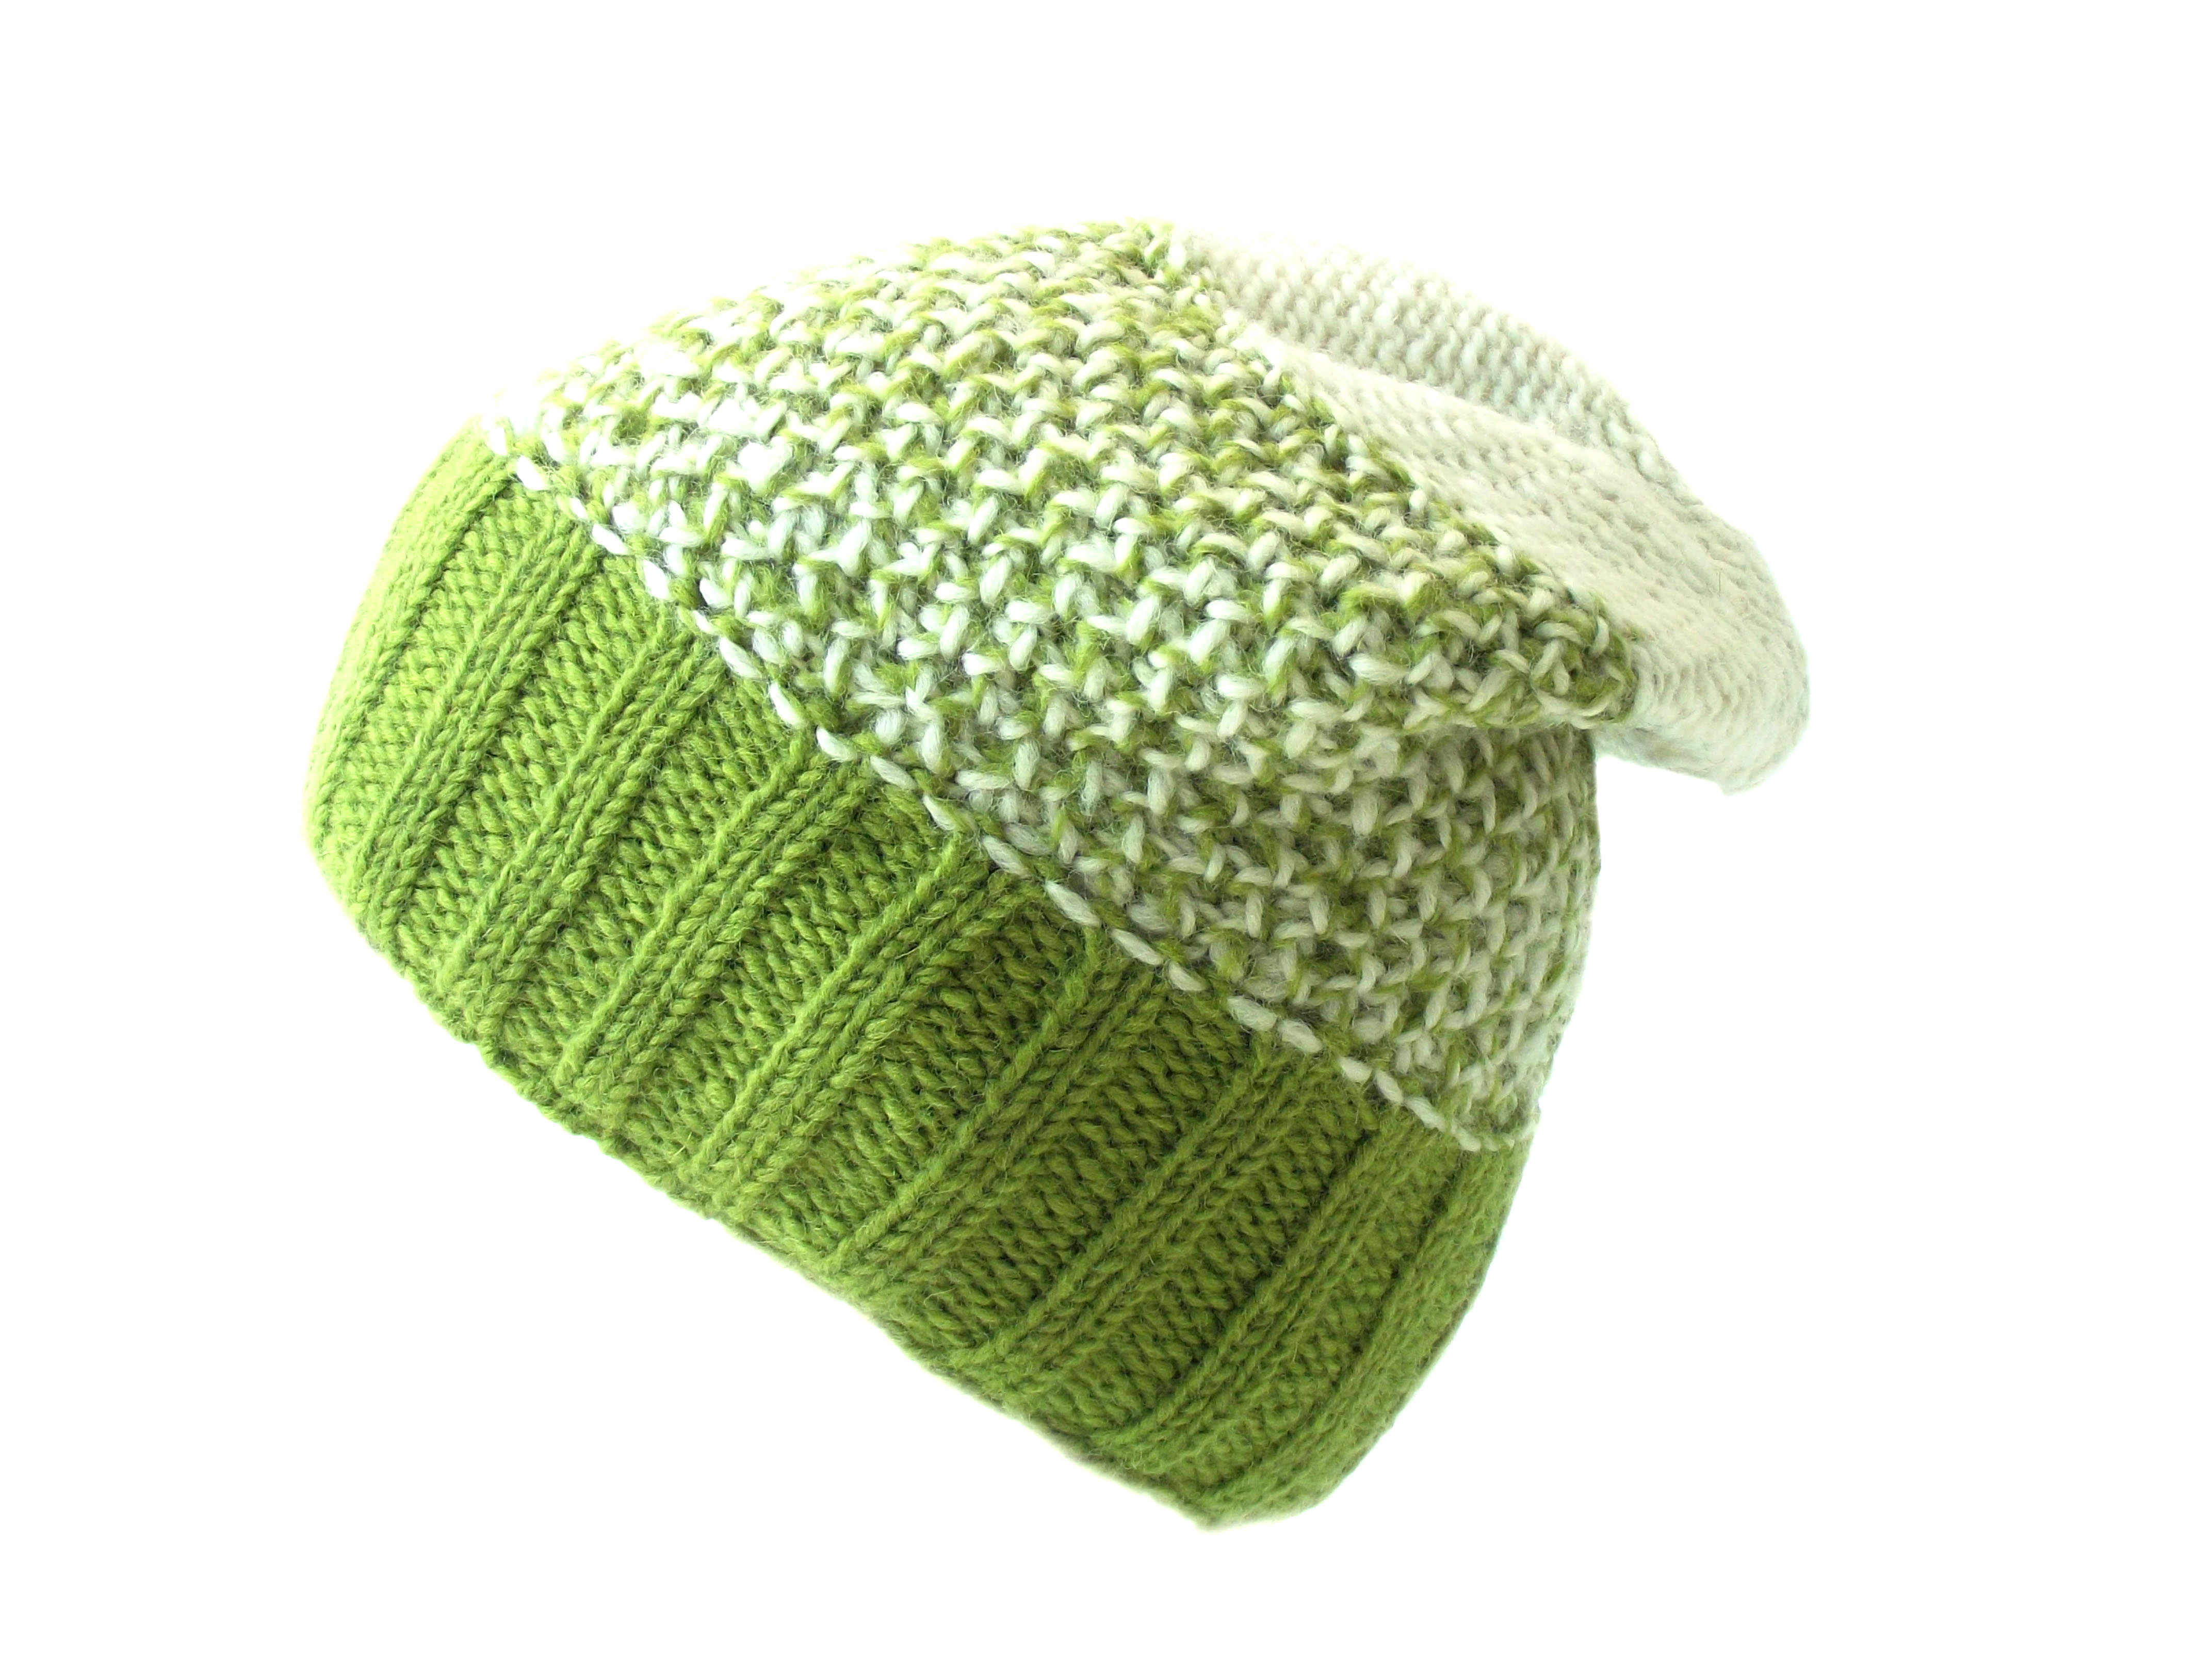 Tri Knit Wool Floppy Hat Green 100% Wool